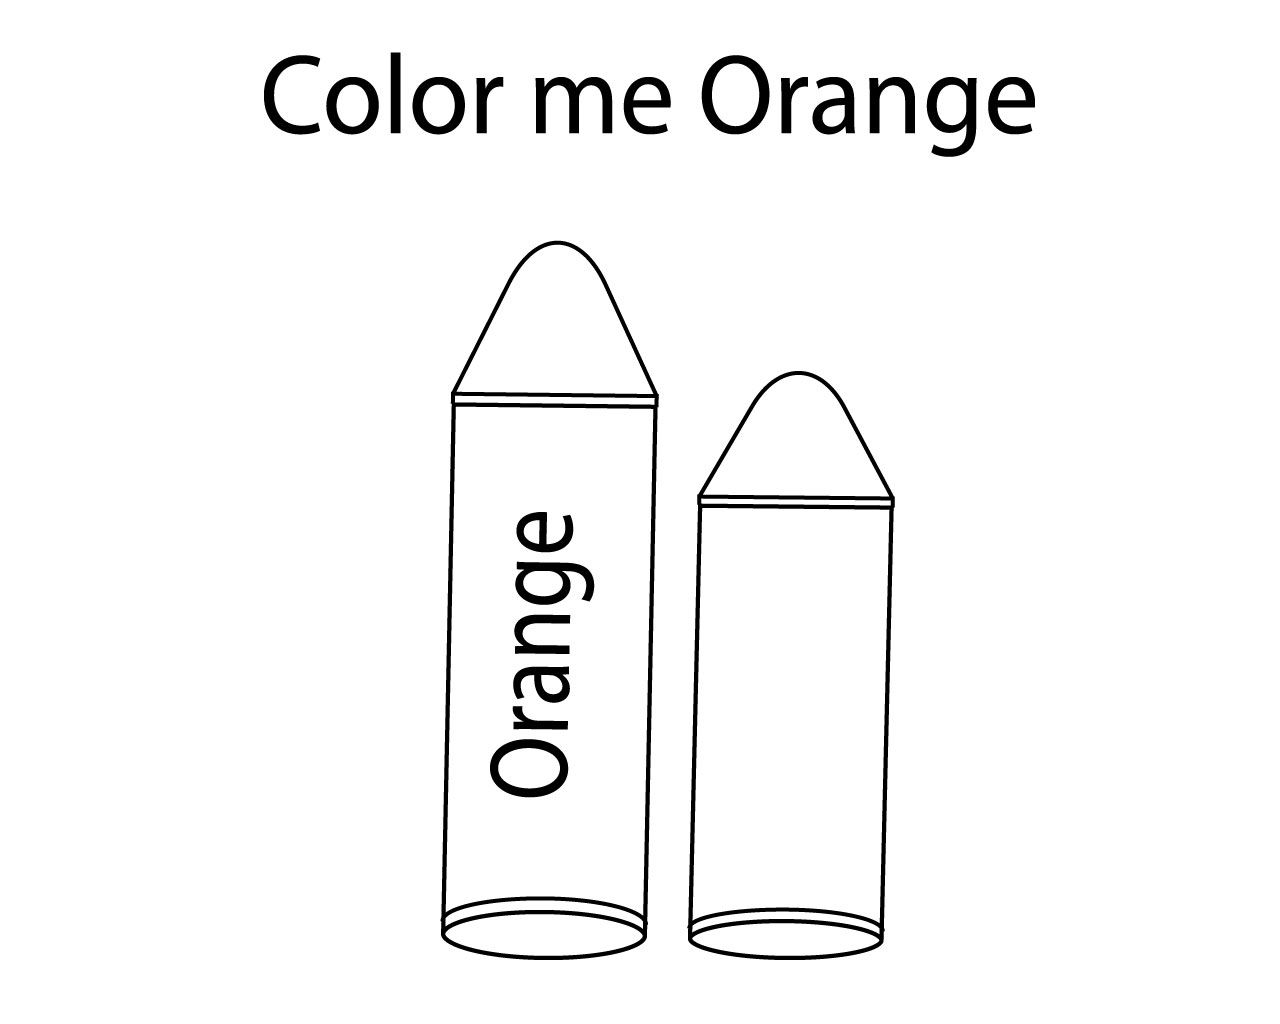 Orange Coloring Pages For Toddlers With Images Coloring Pages